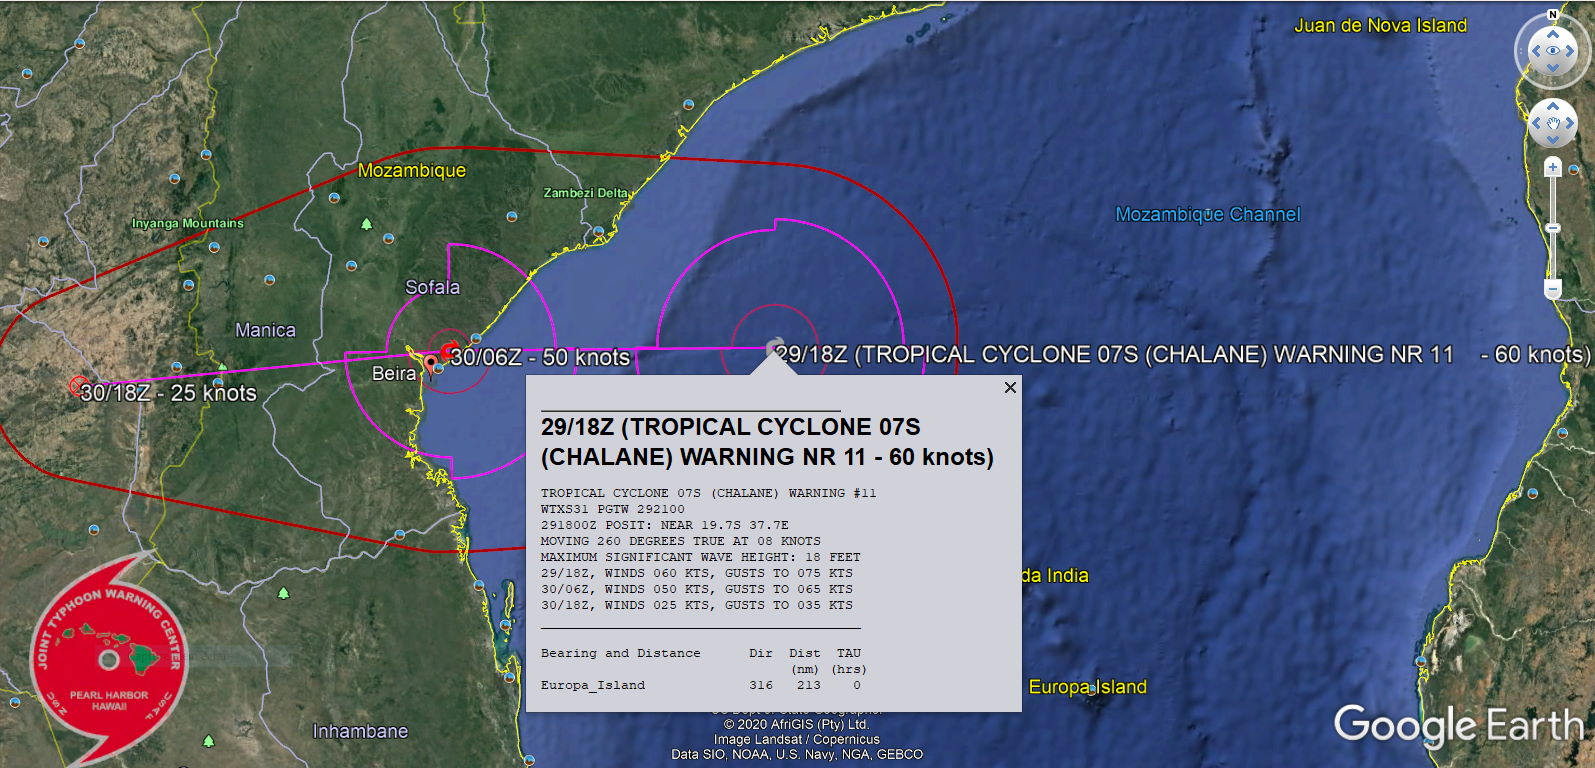 LANDFALL FORECAST IN APPRX 12H NEAR BEIRA/MOZAMBIQUE WITH TOP GUSTS NEARING 150KM/H CLOSE TO THE CENTER.